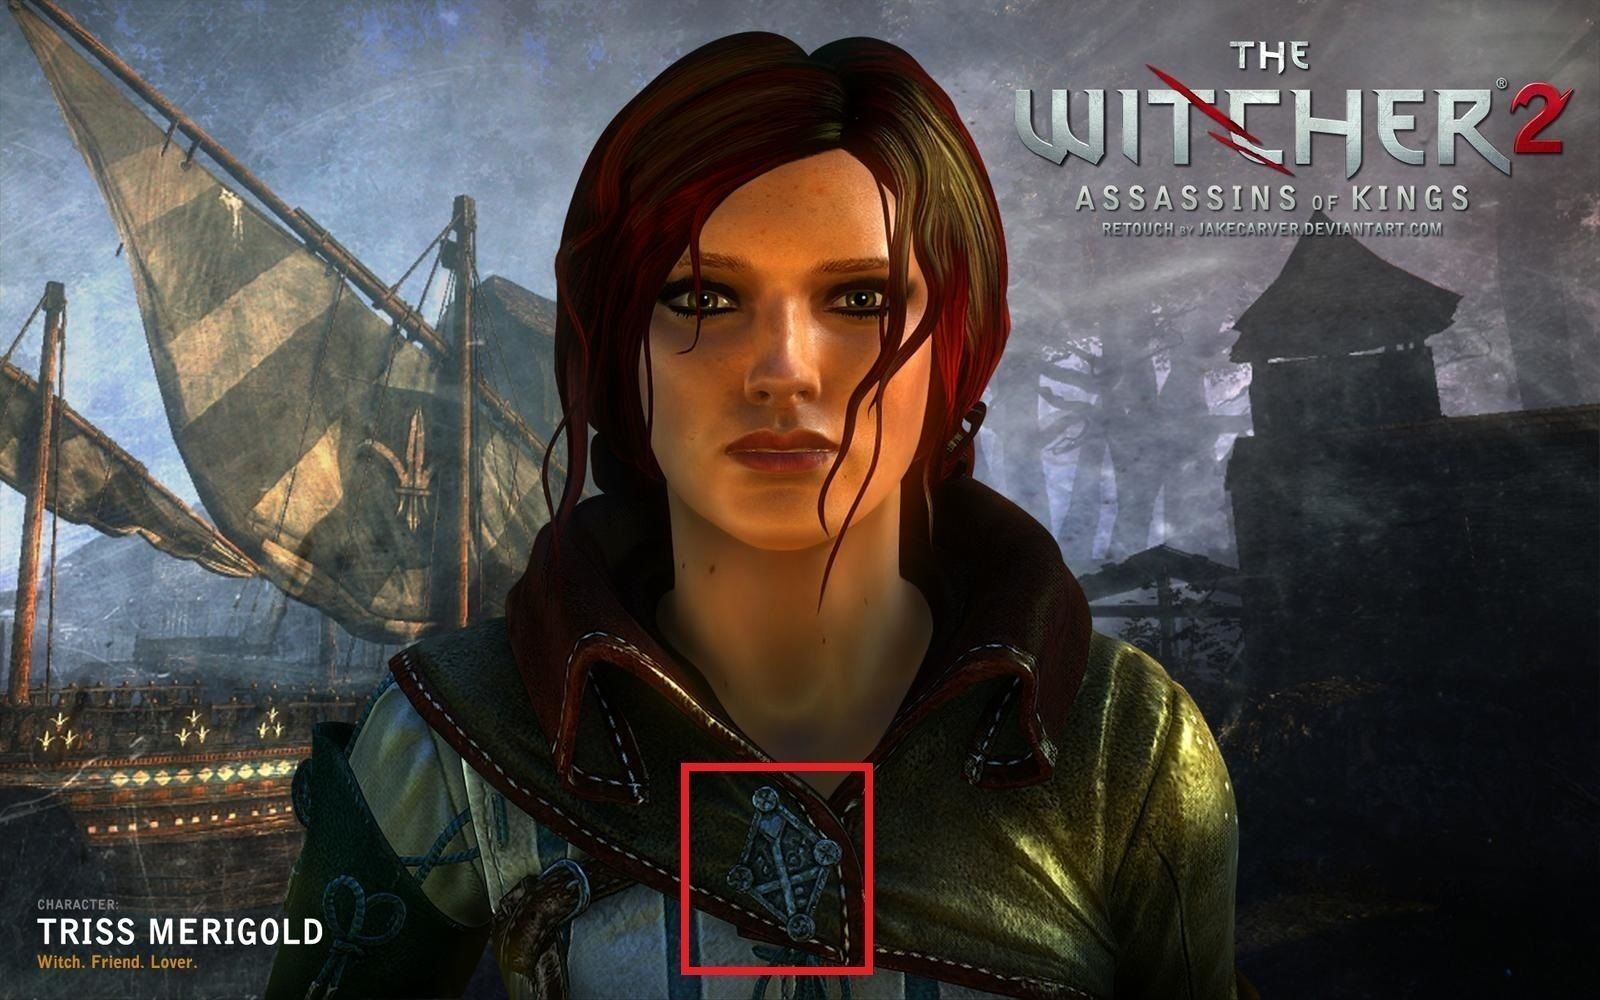 Triss Merigold Witcher 2 dagger and brooch